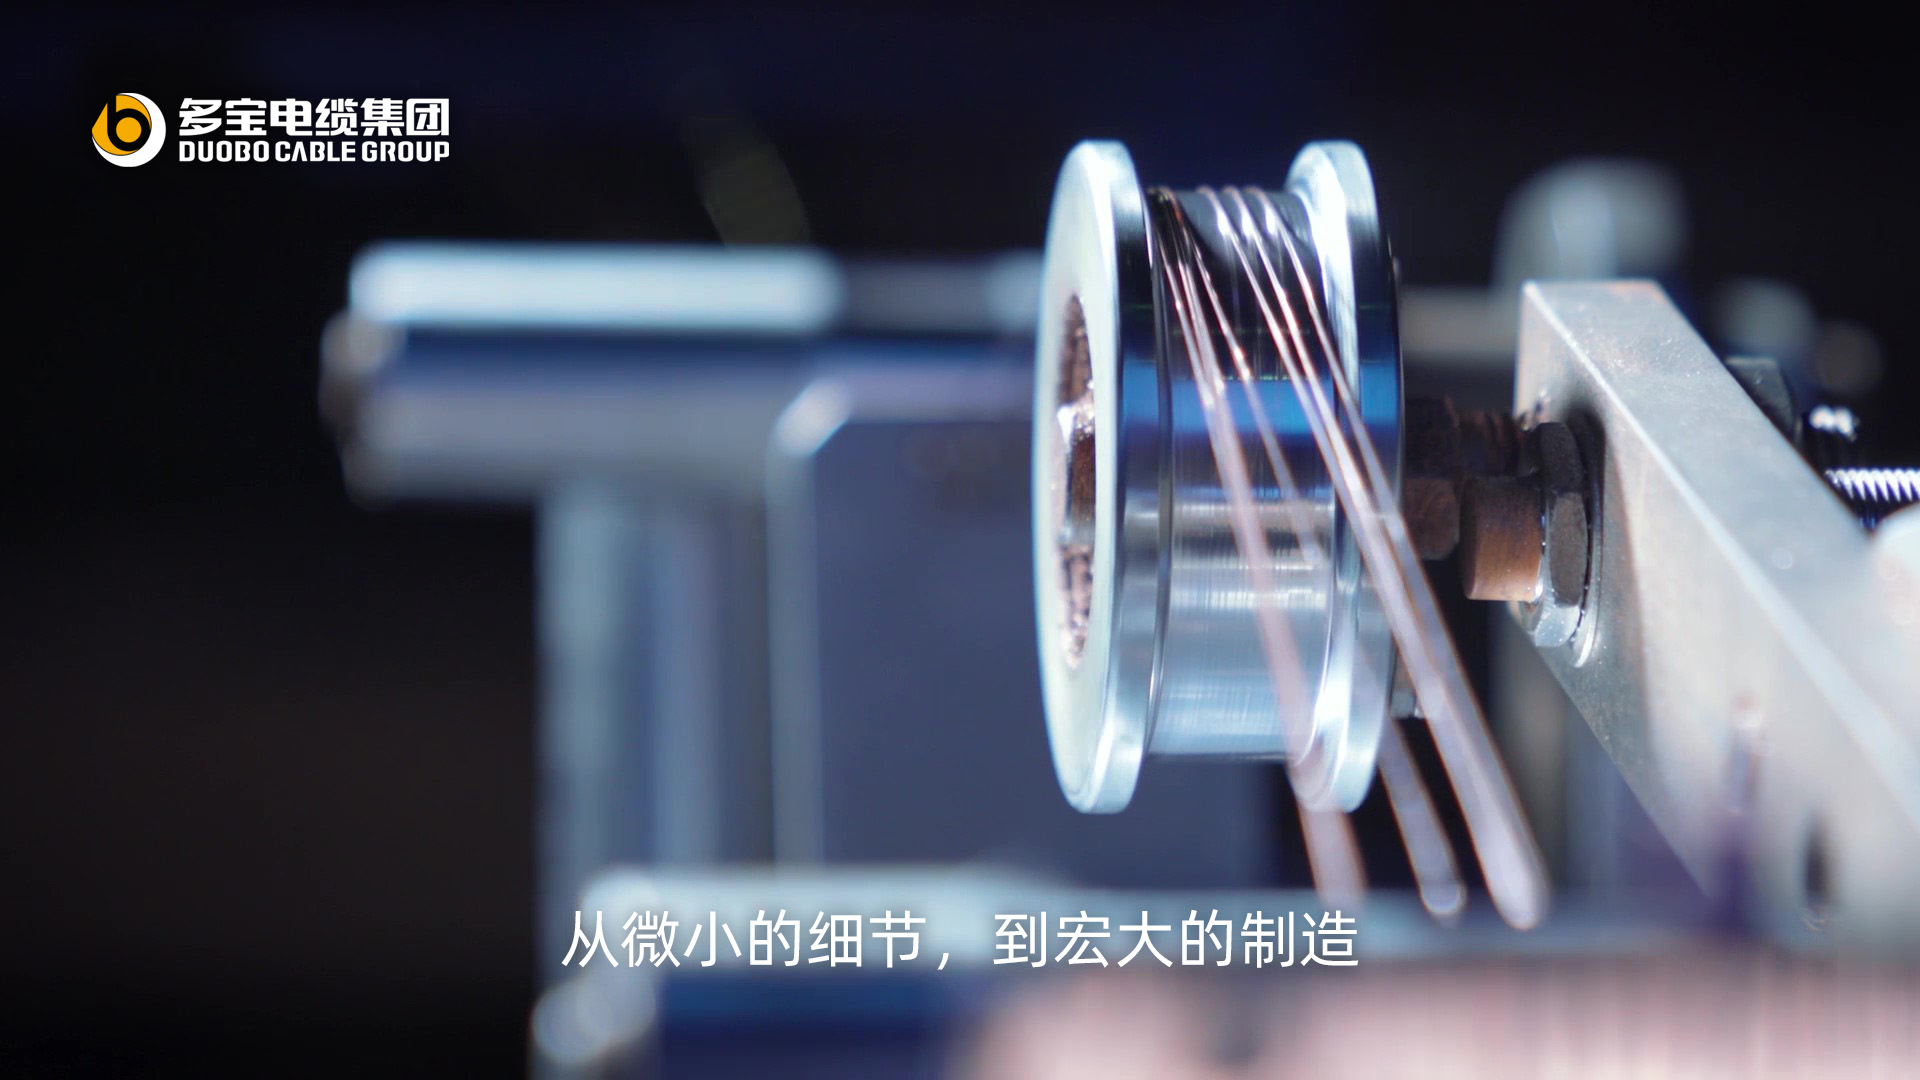 Duobao Cable Group Video 15s